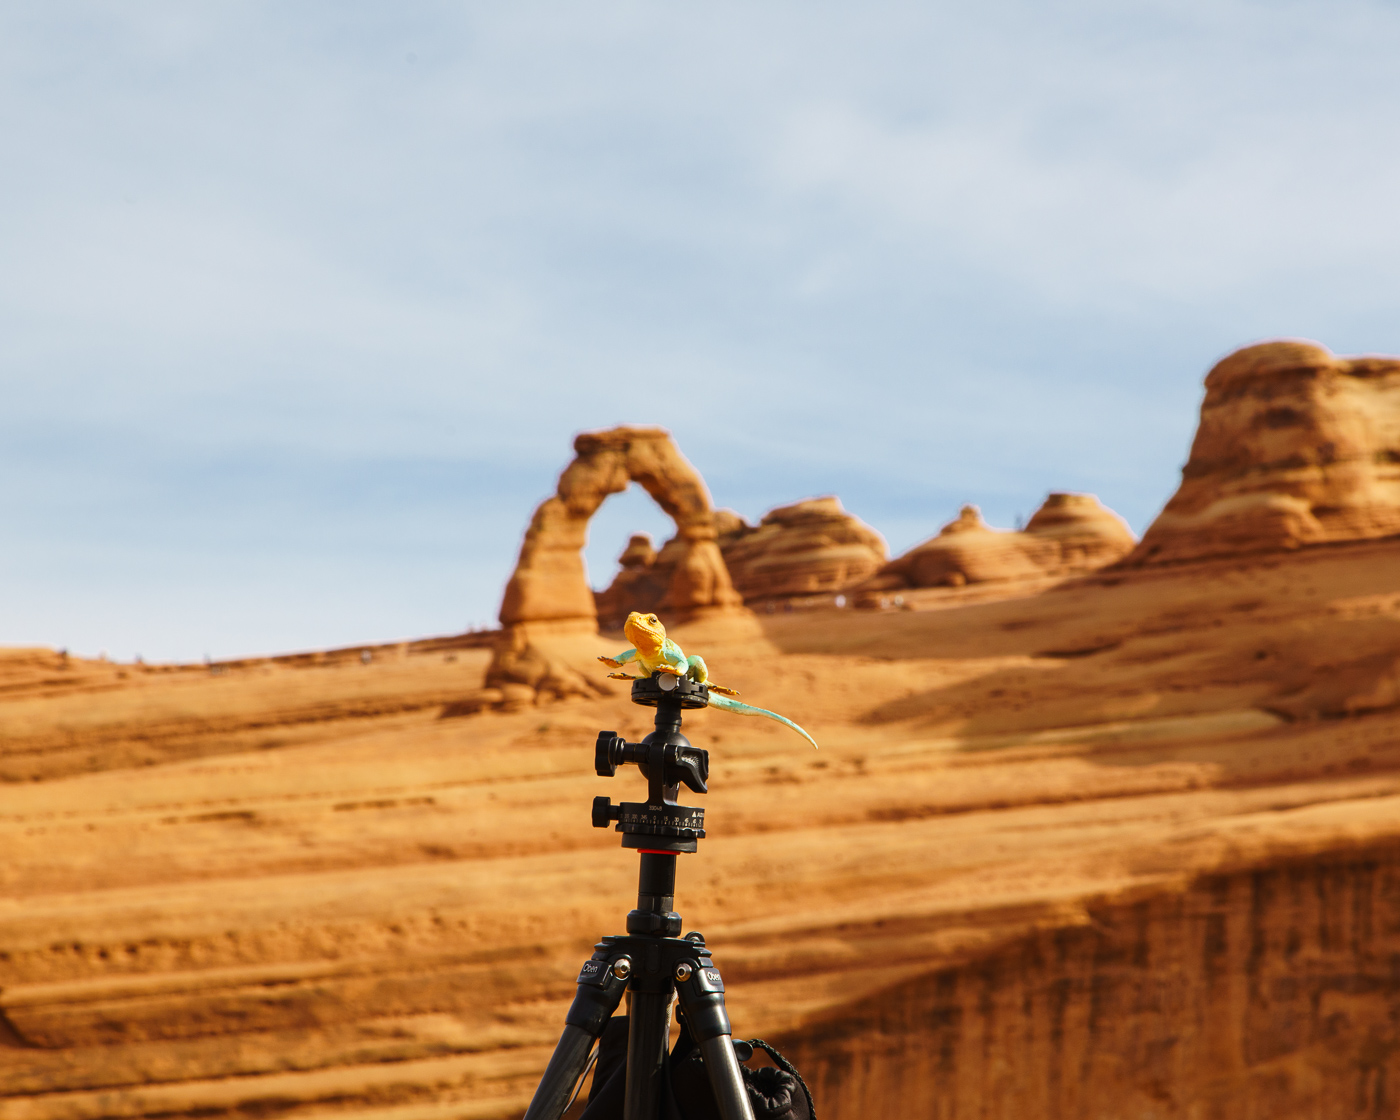 Kanab practicing using the tripod at Delicate Arch, Arches National Park, Utah.